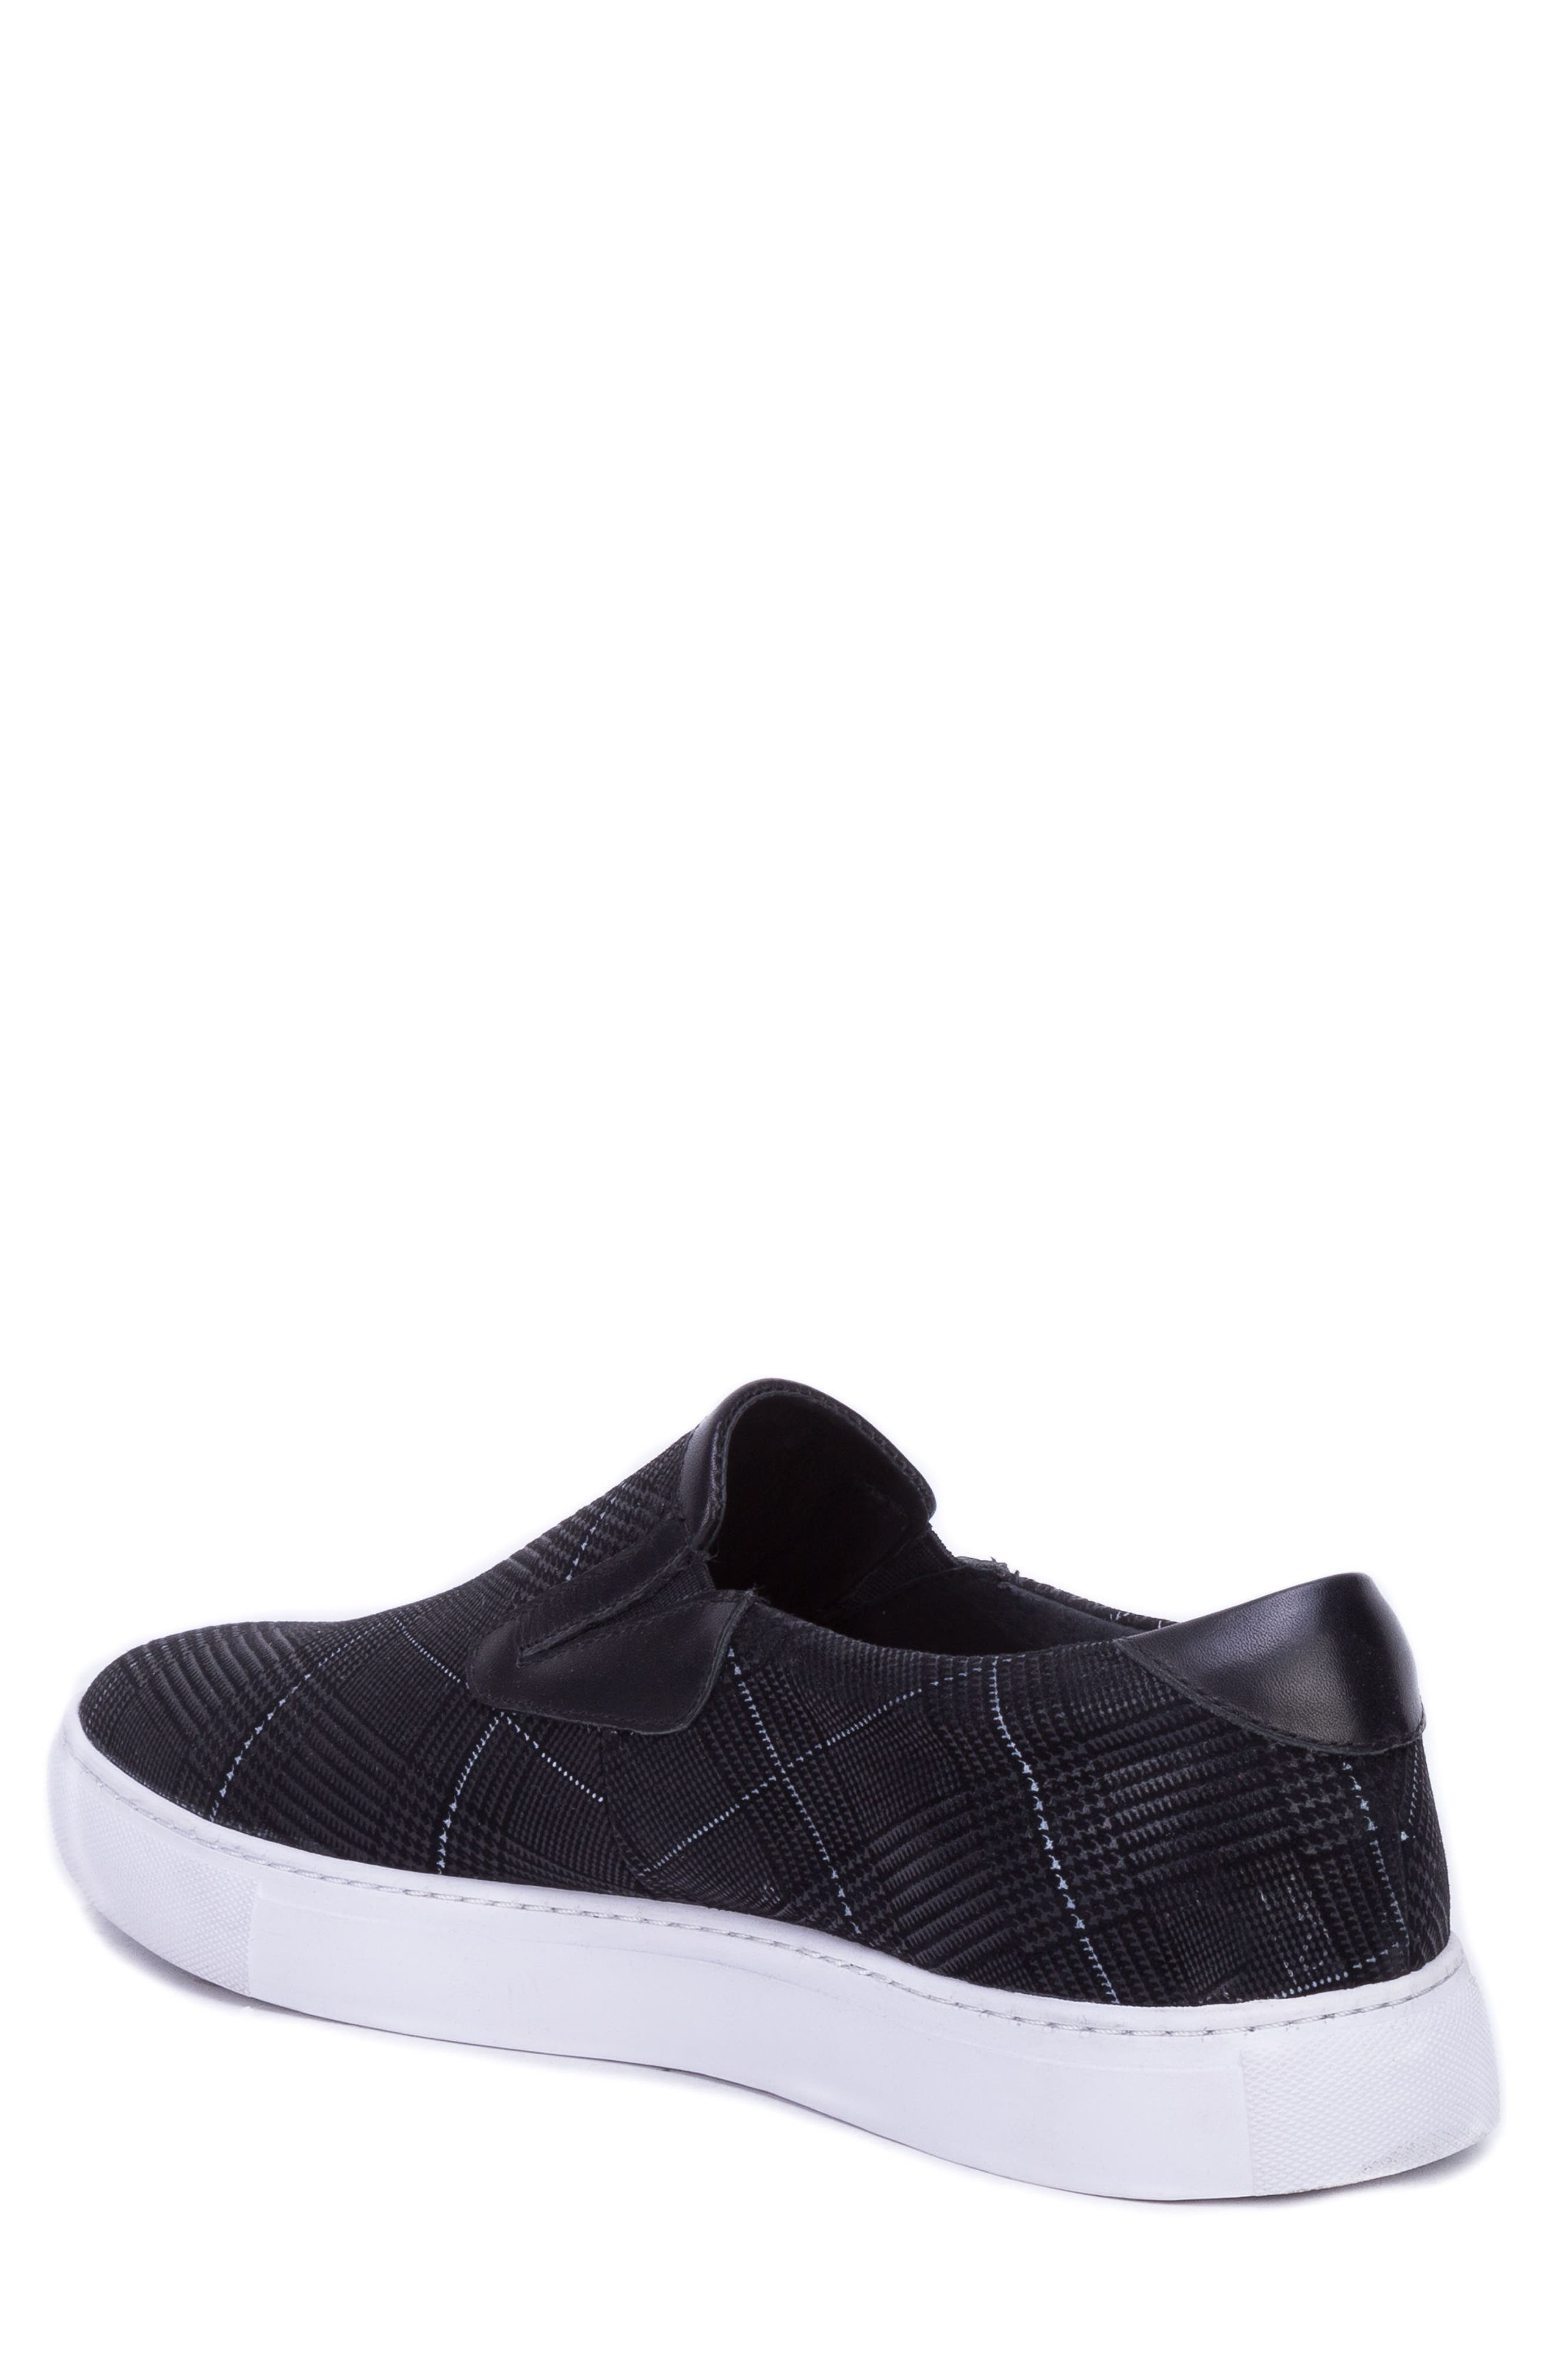 Kerby Slip-On Sneaker,                             Alternate thumbnail 2, color,                             BLACK SUEDE